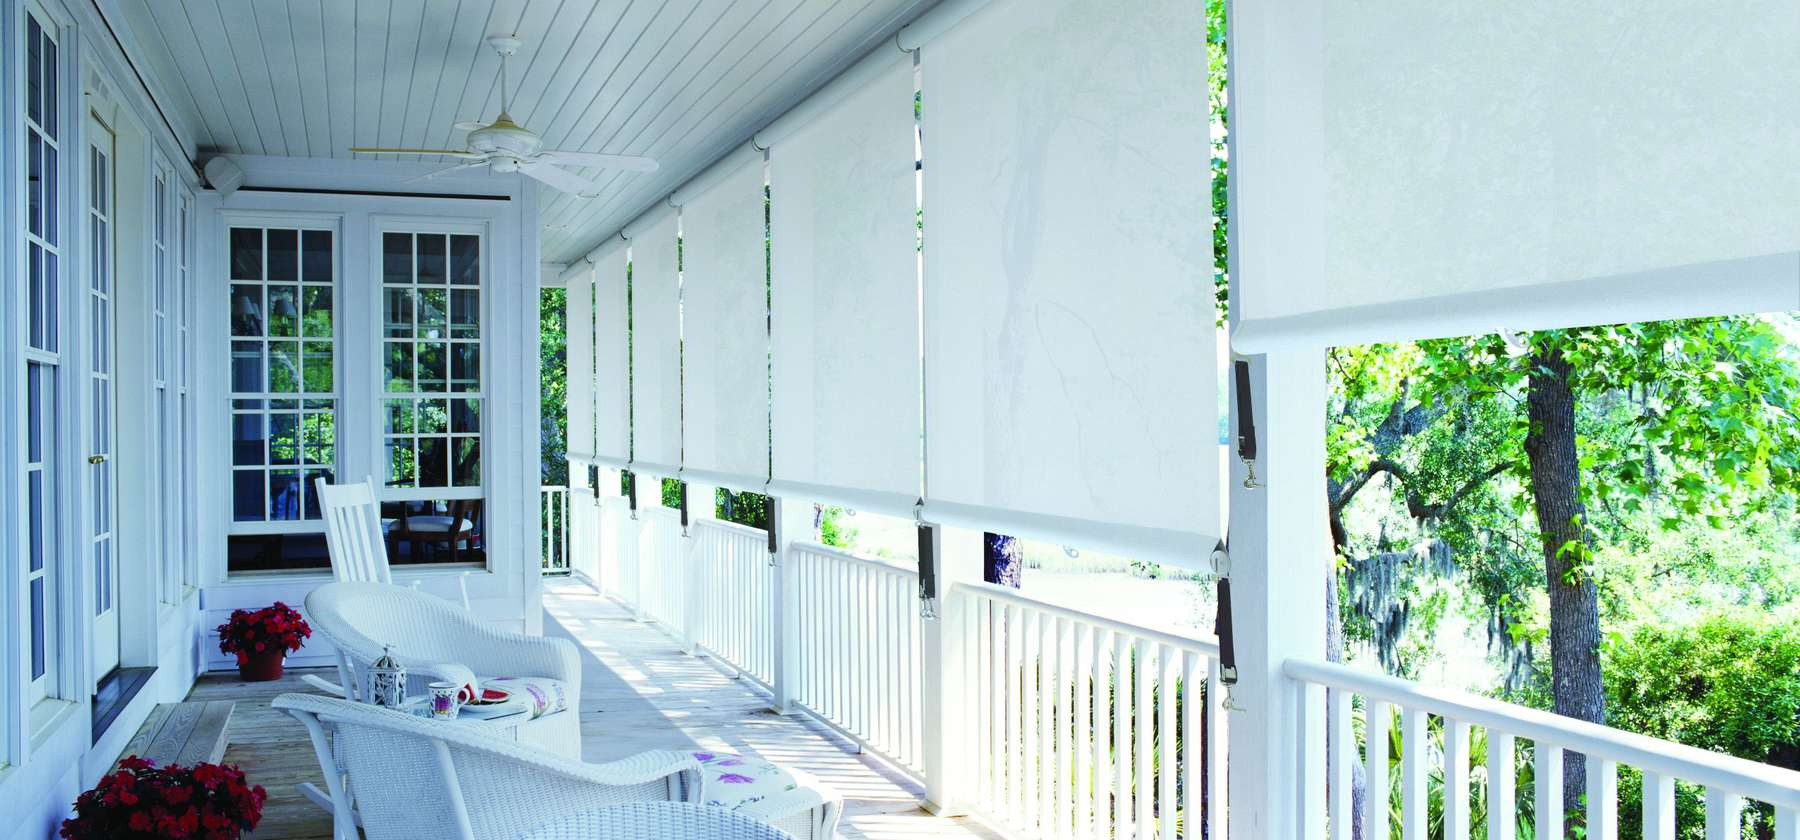 Balcony Curtains: Actual and Fashionable Decoration Ideas. White vertical blinds